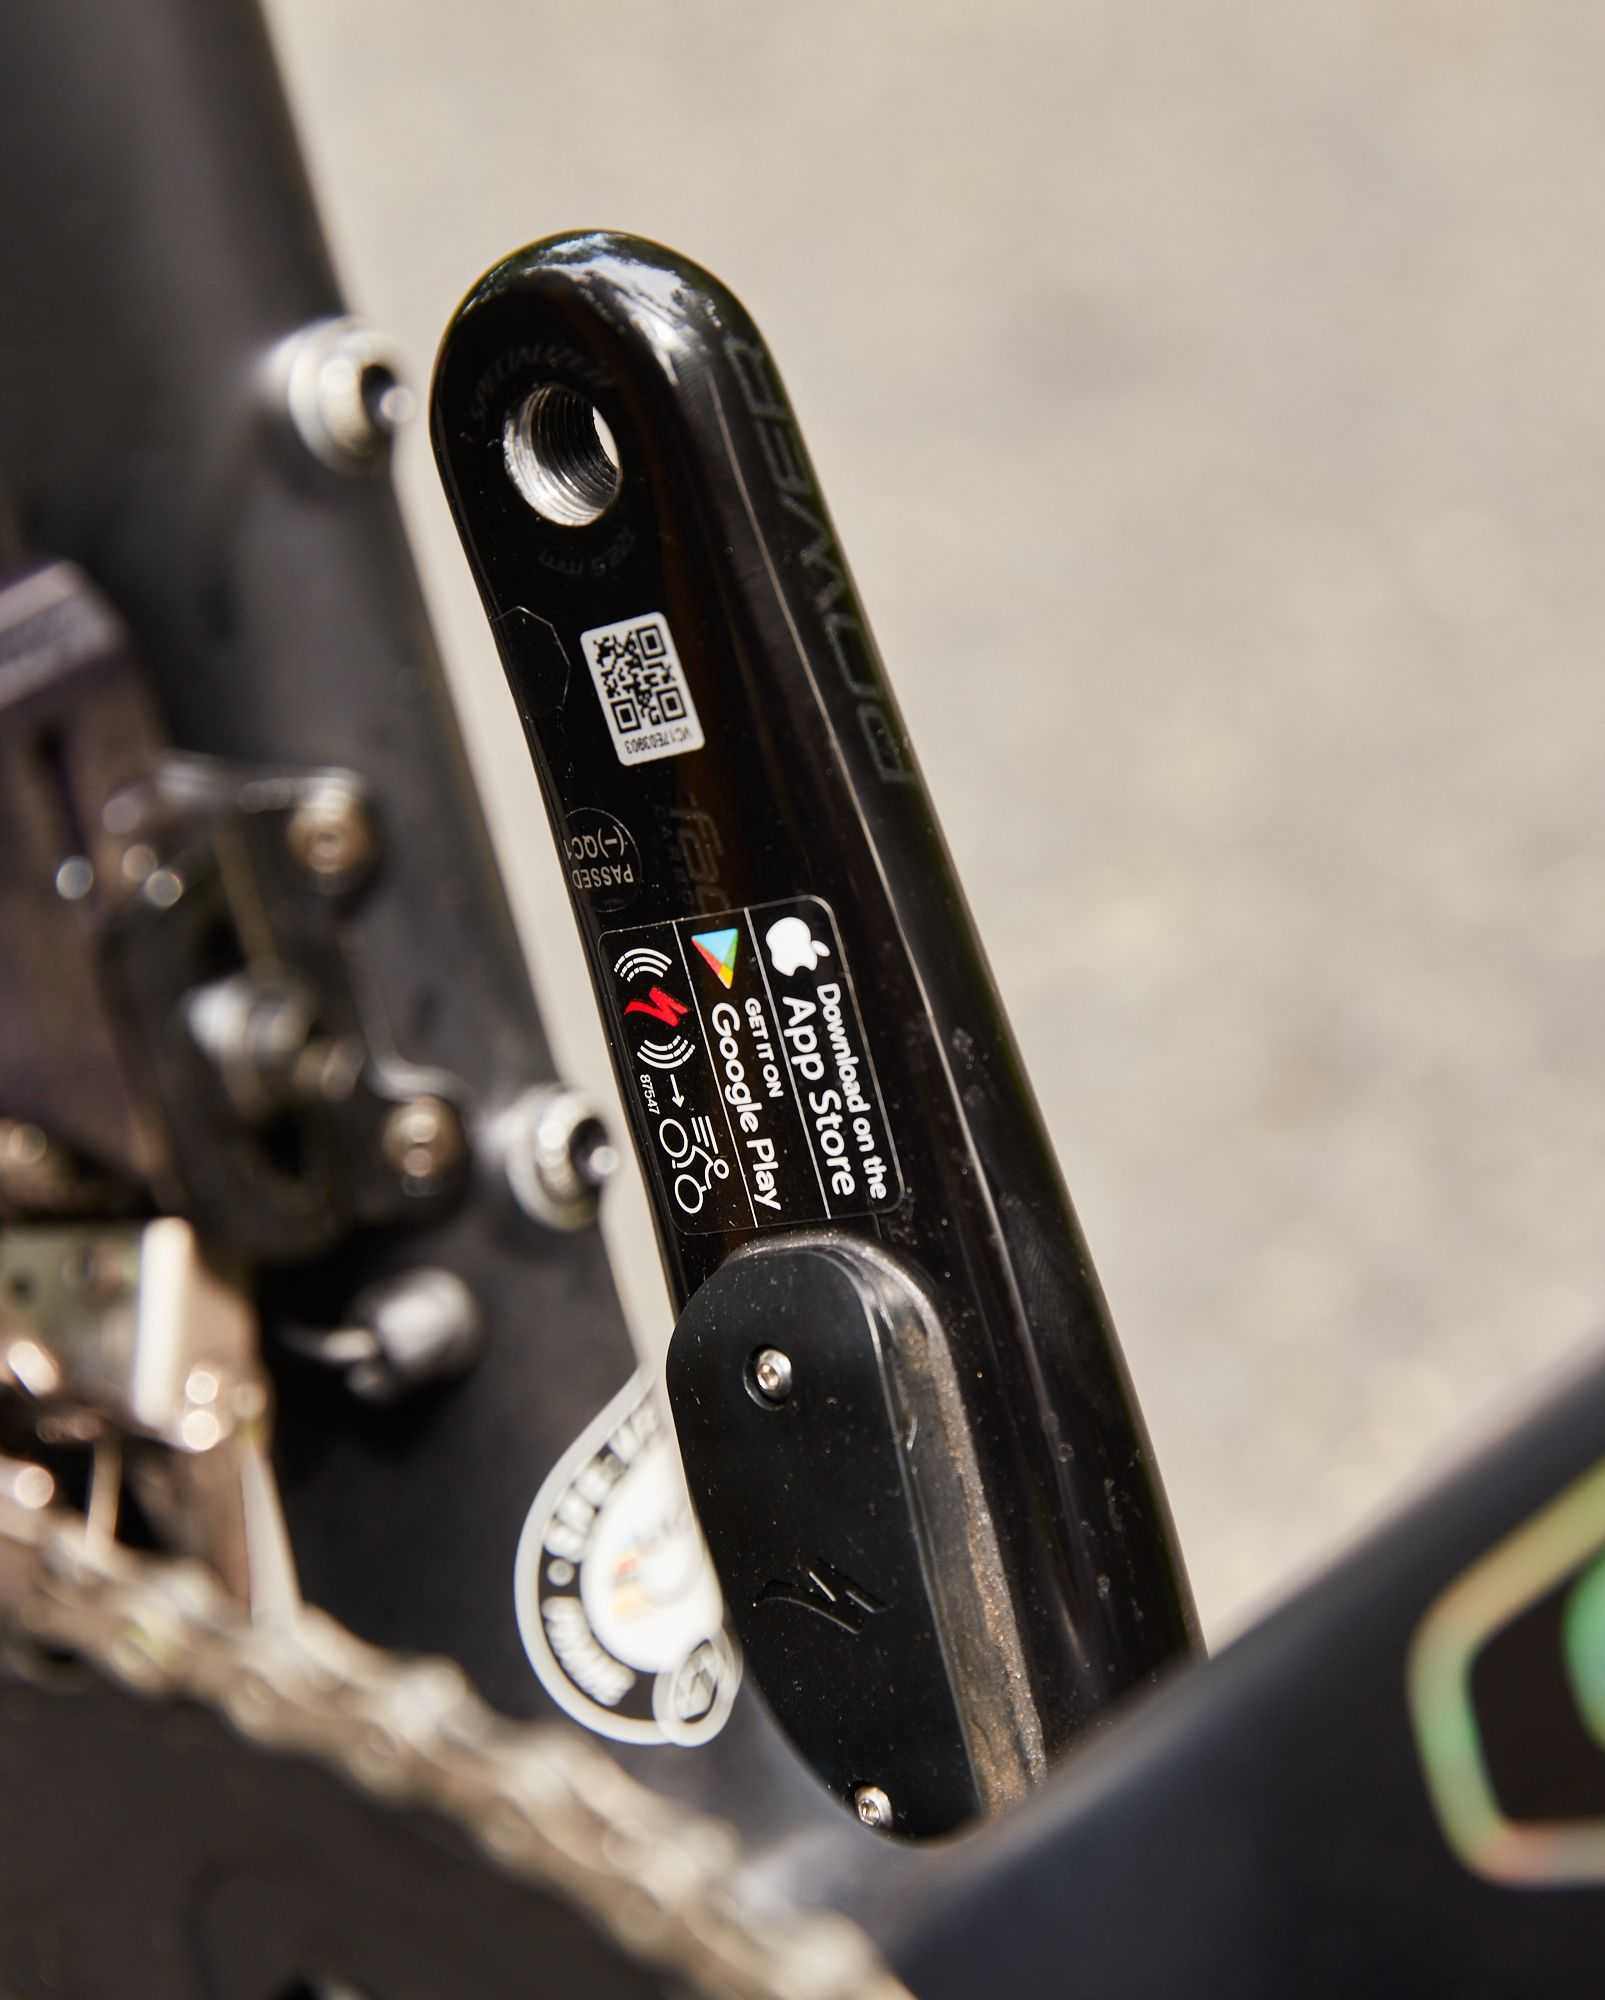 Specialized S-Works Venge Gen 3 Power Meter